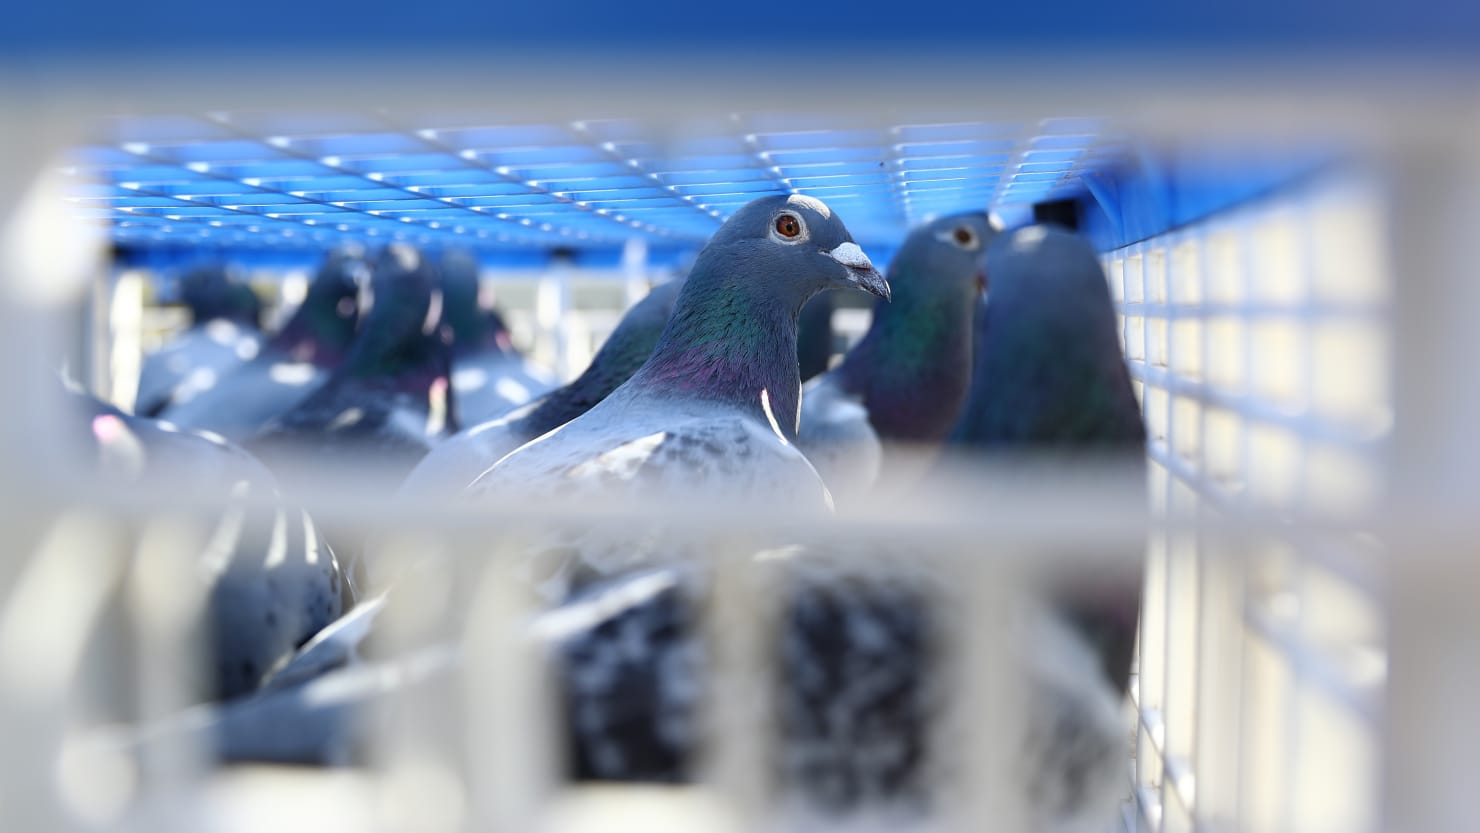 Belgian Racing Pigeon Sells for Record-Breaking $1.9 Million to Unidentified Chinese Buyer